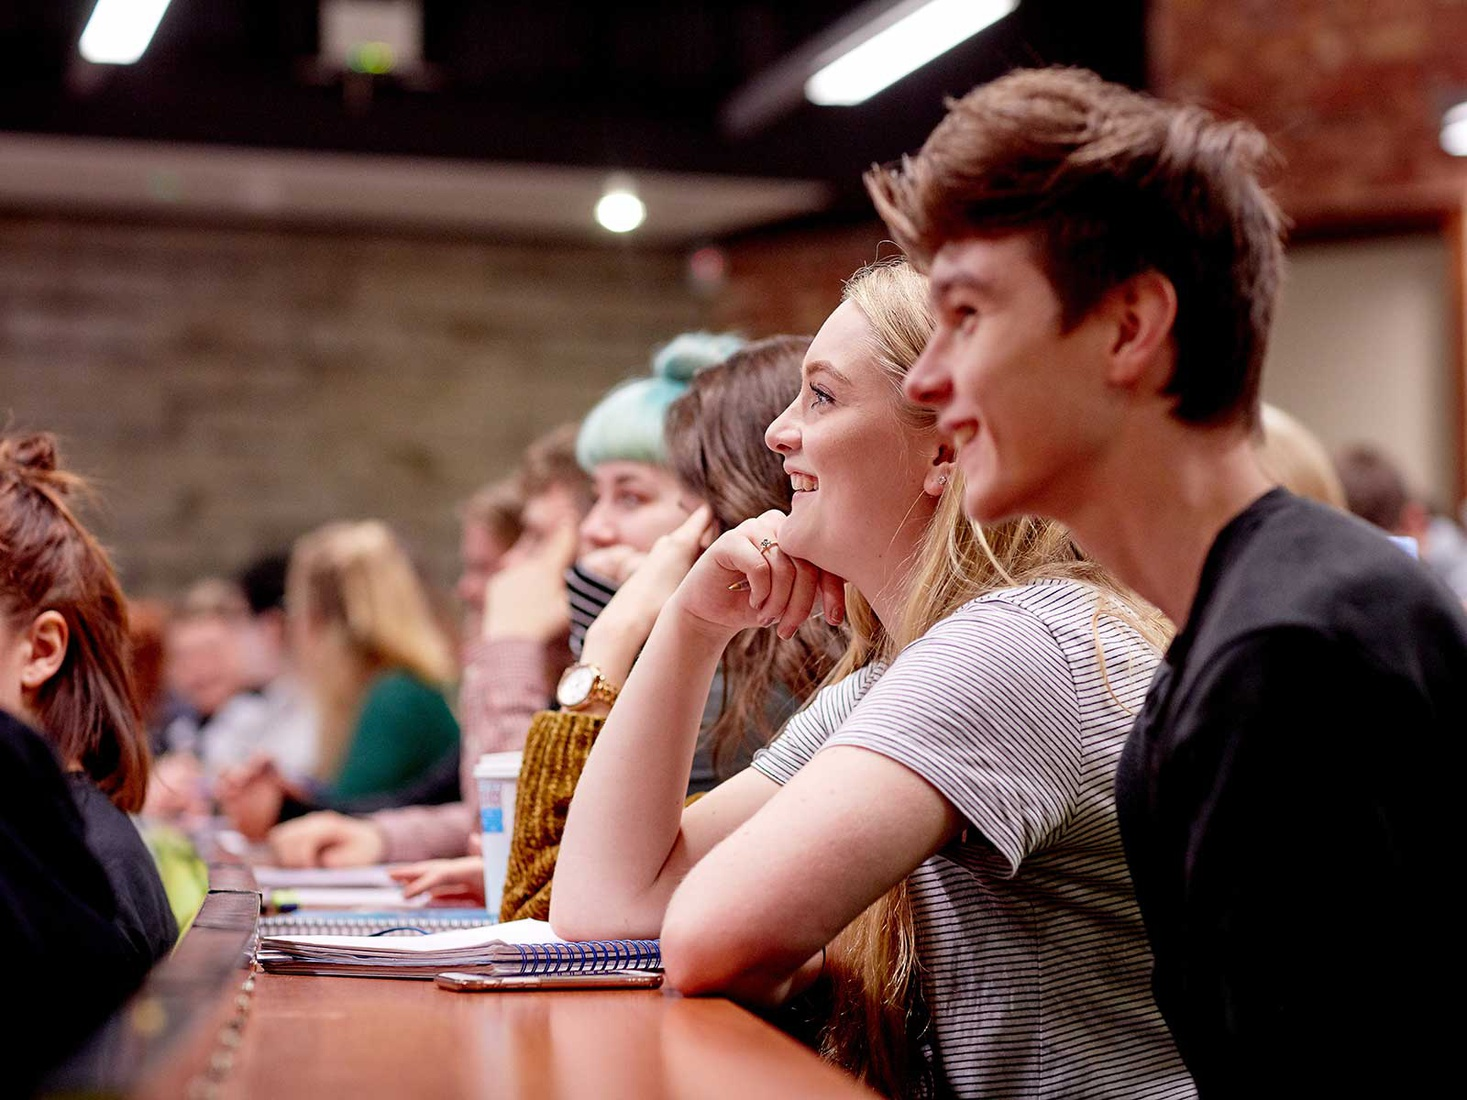 students in a lecture. They are smiling